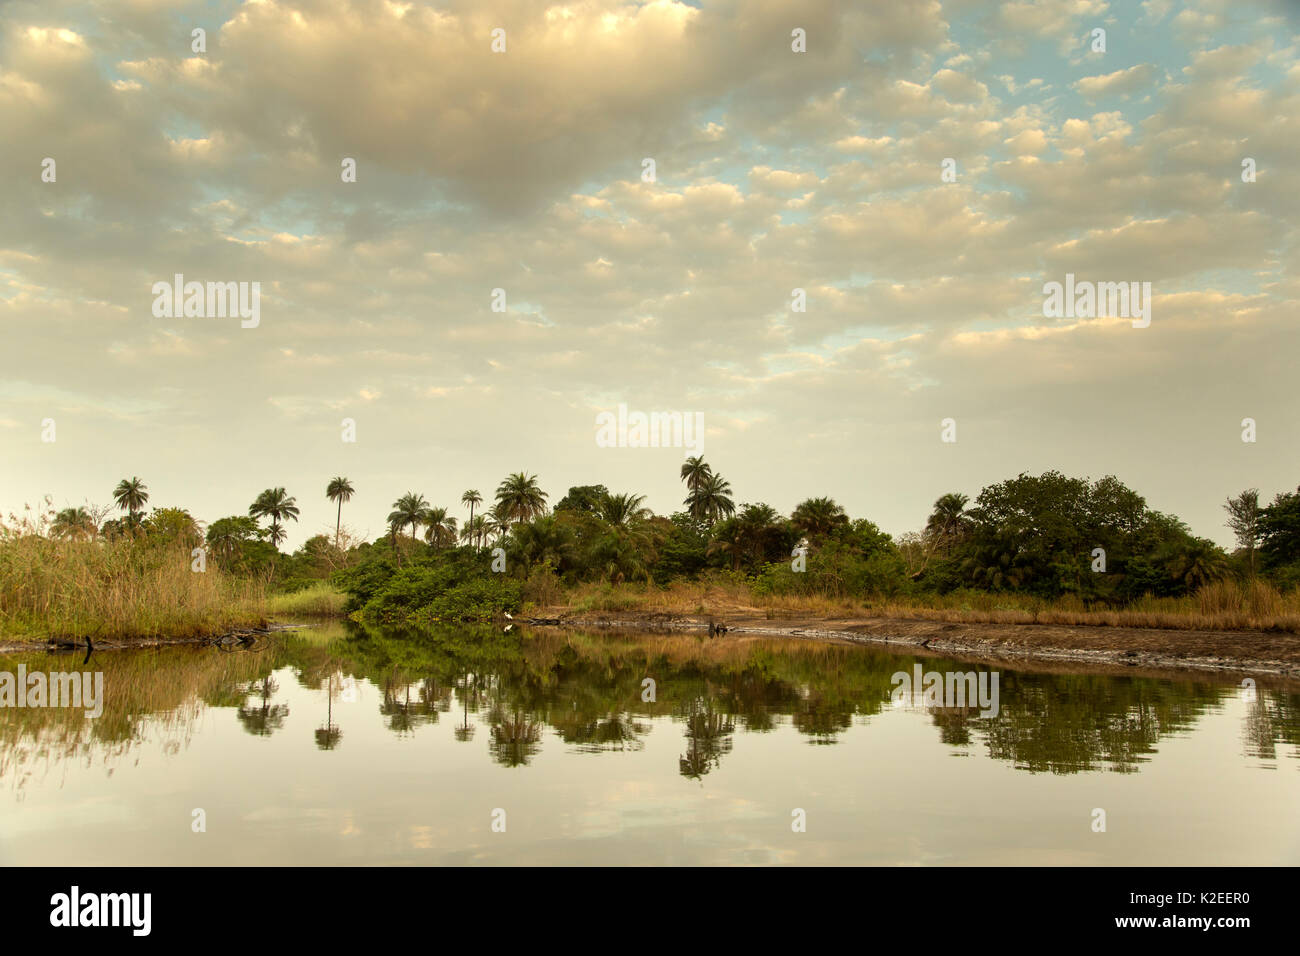 Mangrove creeks along the Marakissa River. These mangroves have been seriously degraded by human influence. Gambia, Africa, May. - Stock Image